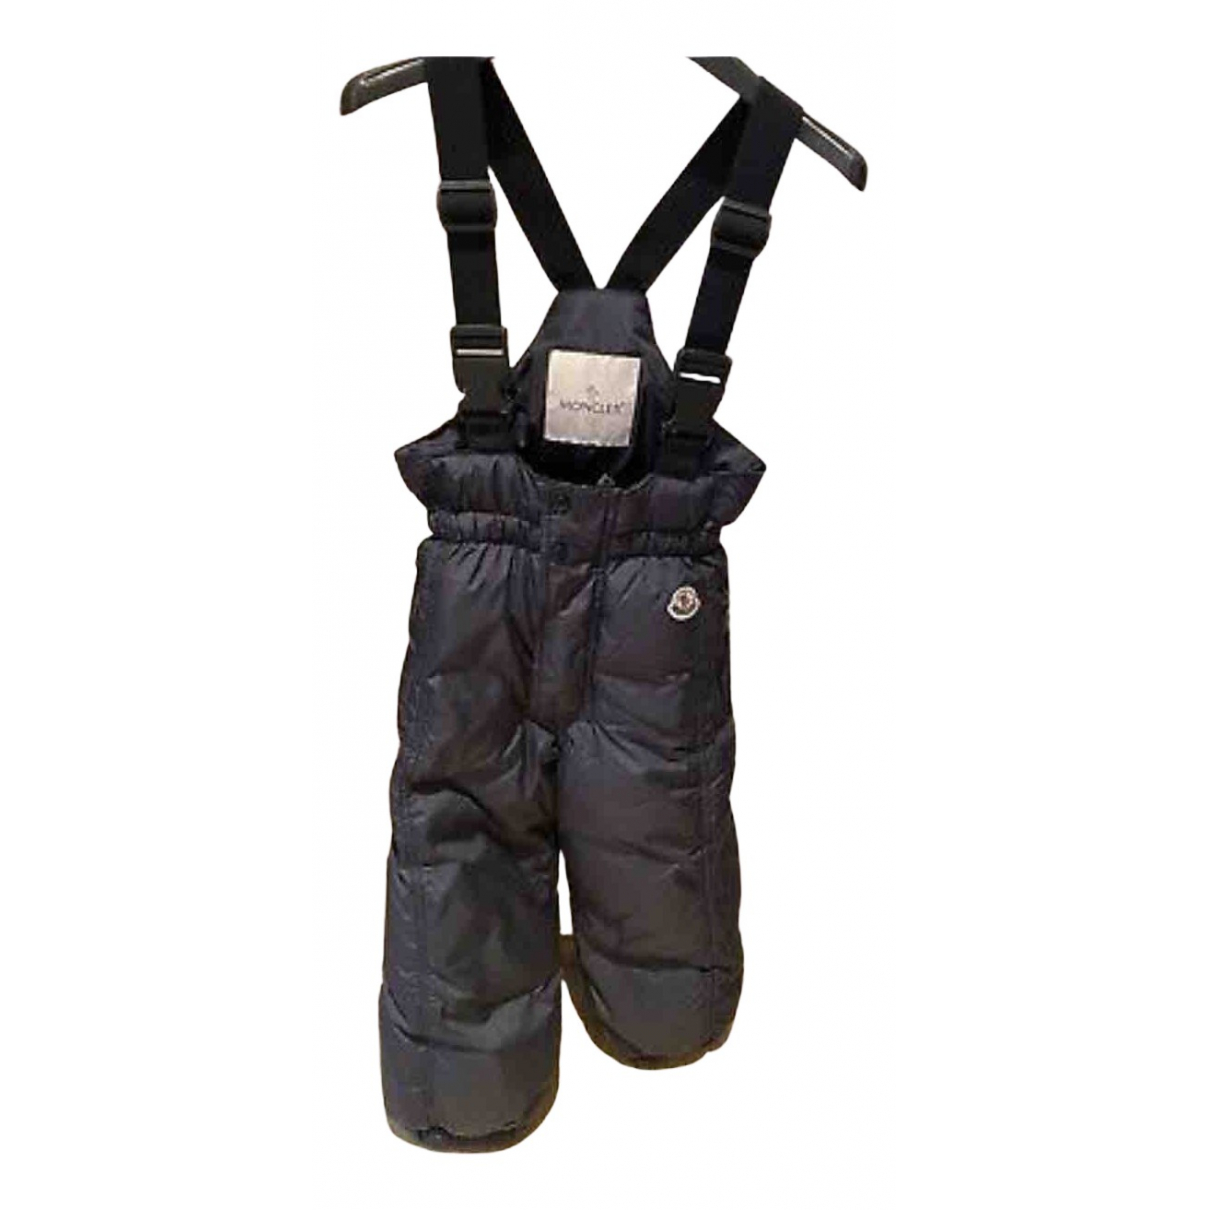 Moncler N Blue Trousers for Kids 5 years - up to 108cm FR